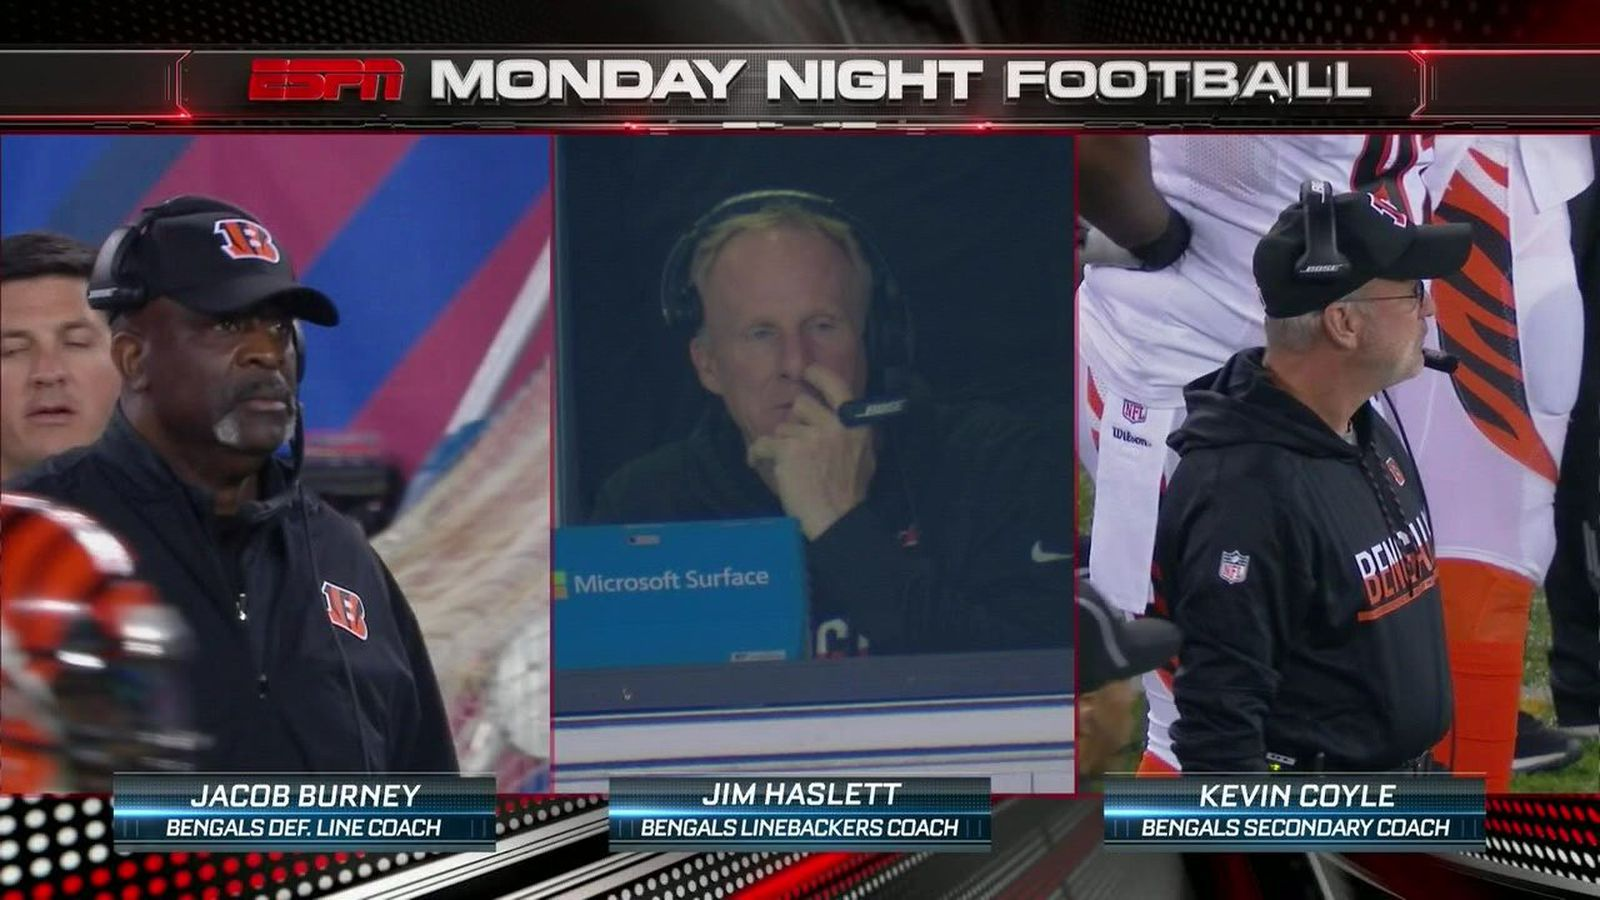 Bengals LB coach Jim Haslett got caught picking his nose in the coaches booth - SBNation.com